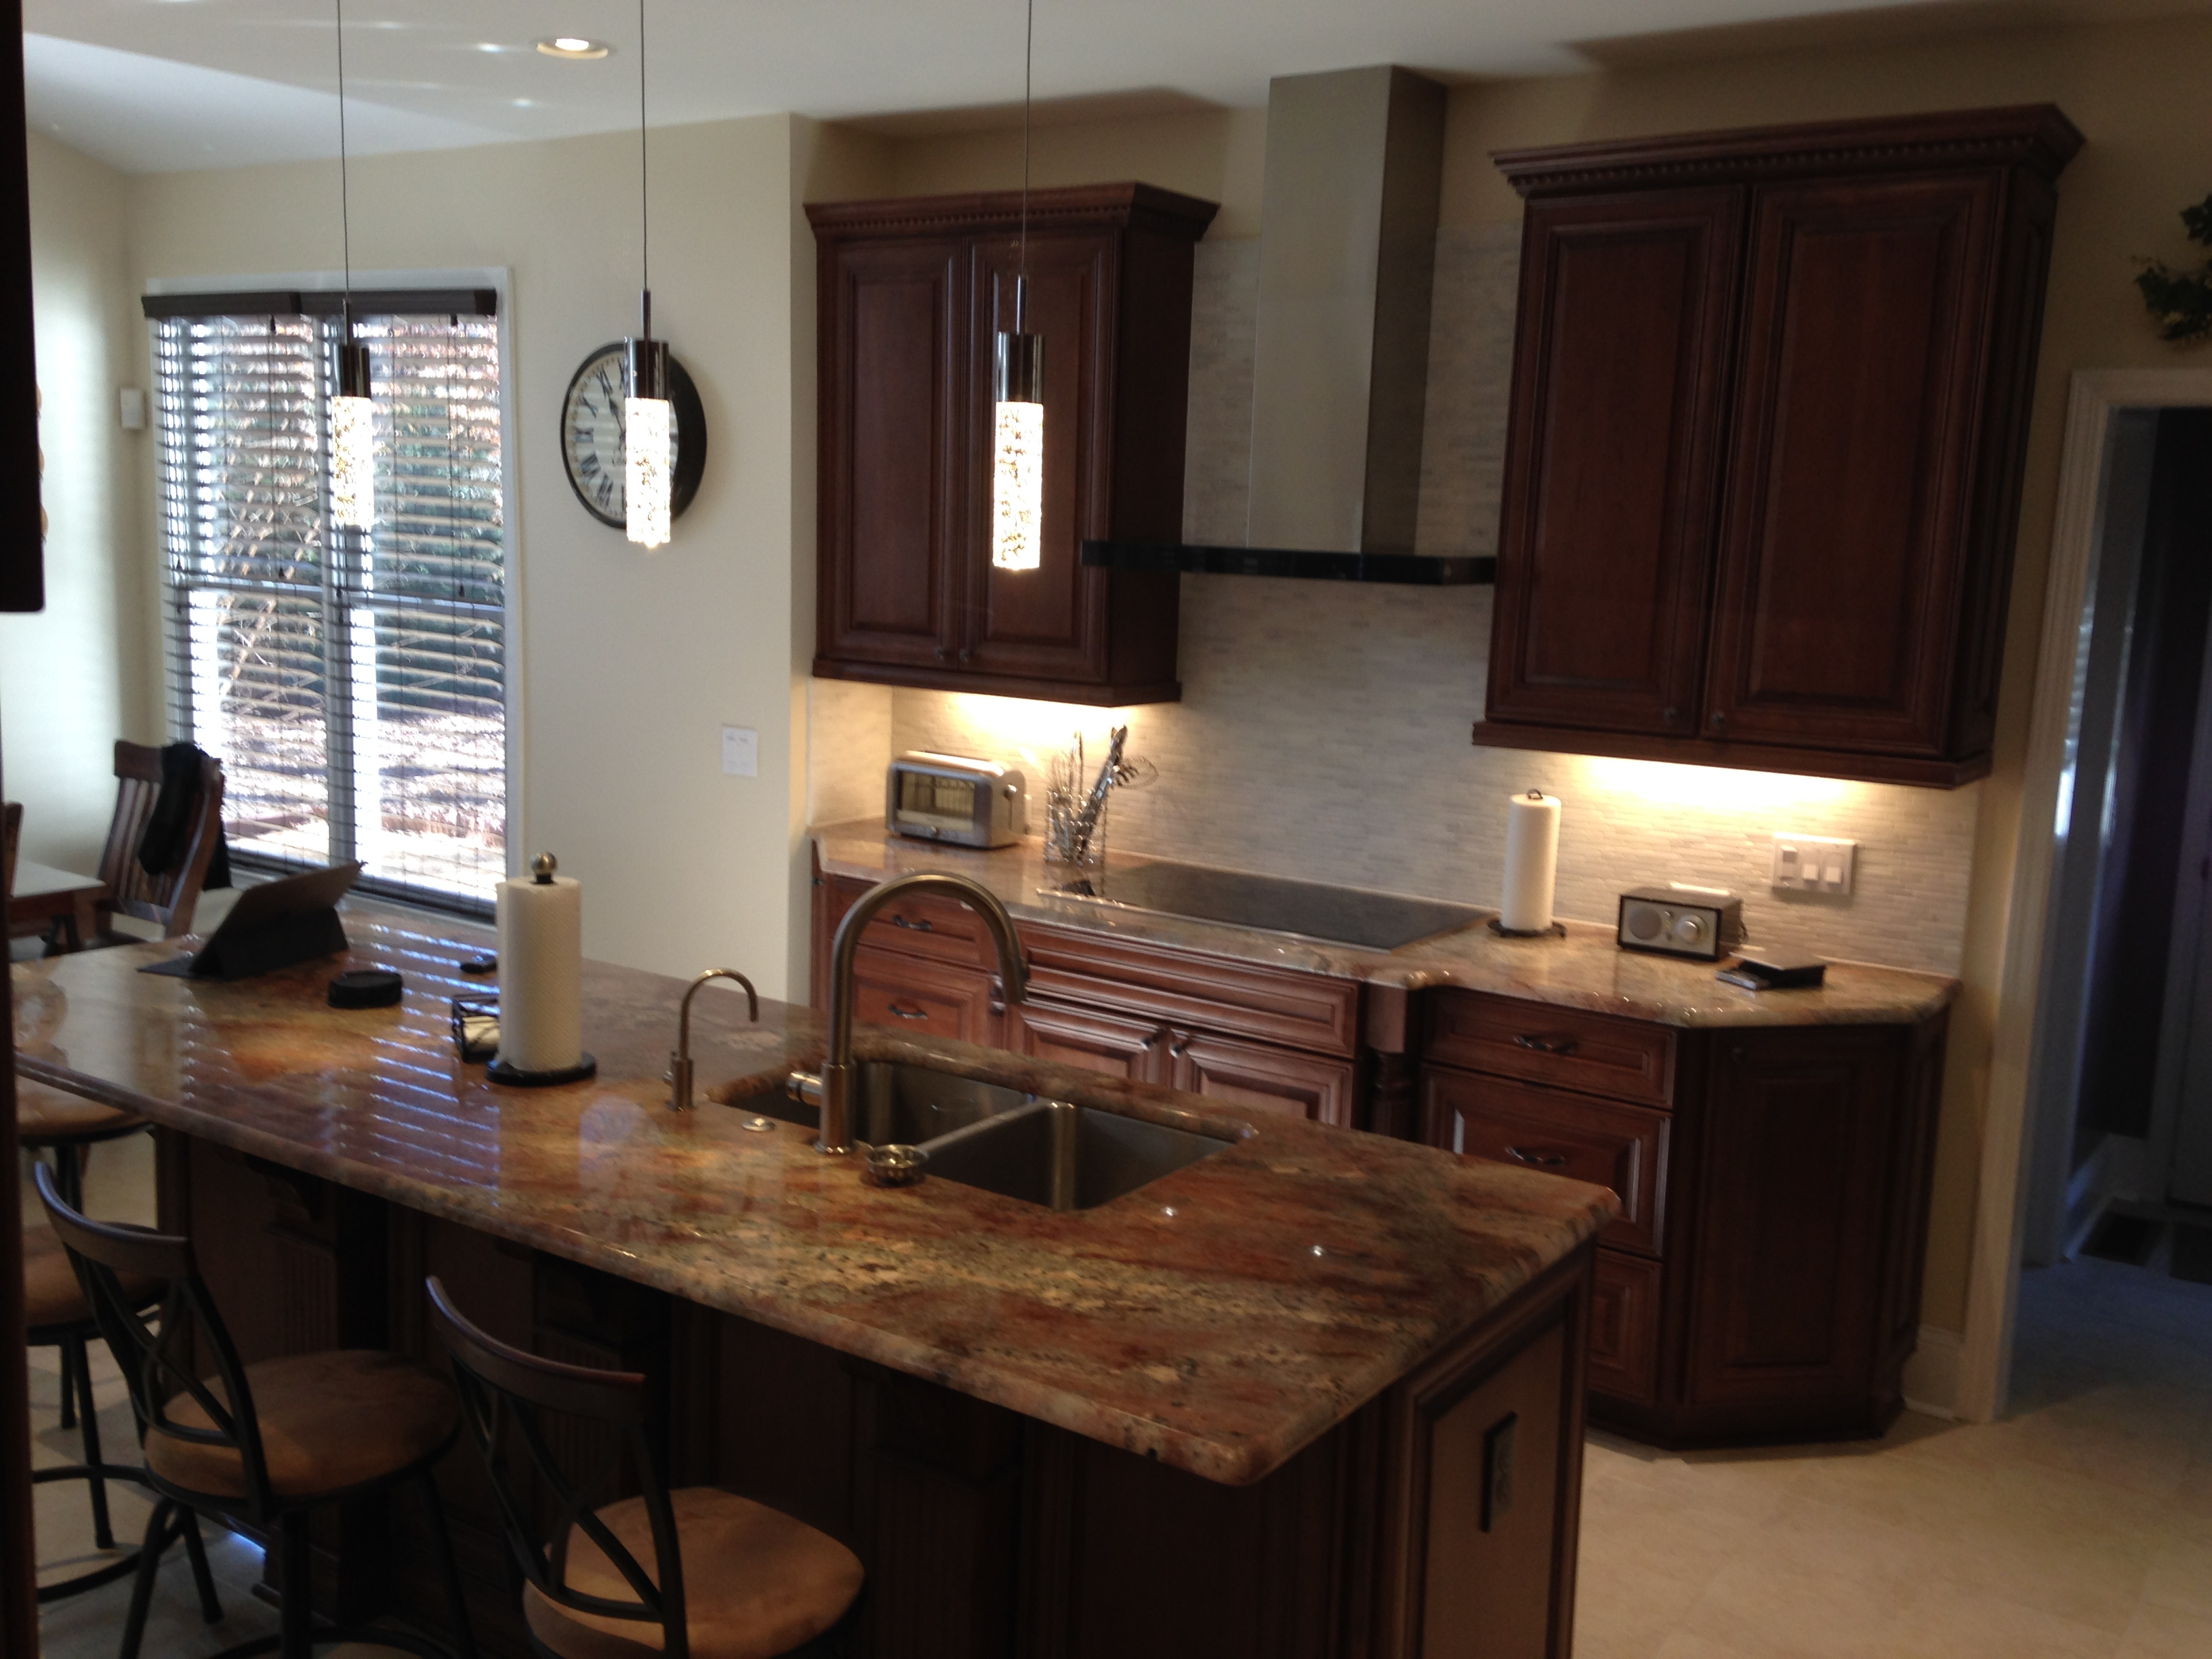 Finishedkitchens/IMG_3902.JPG